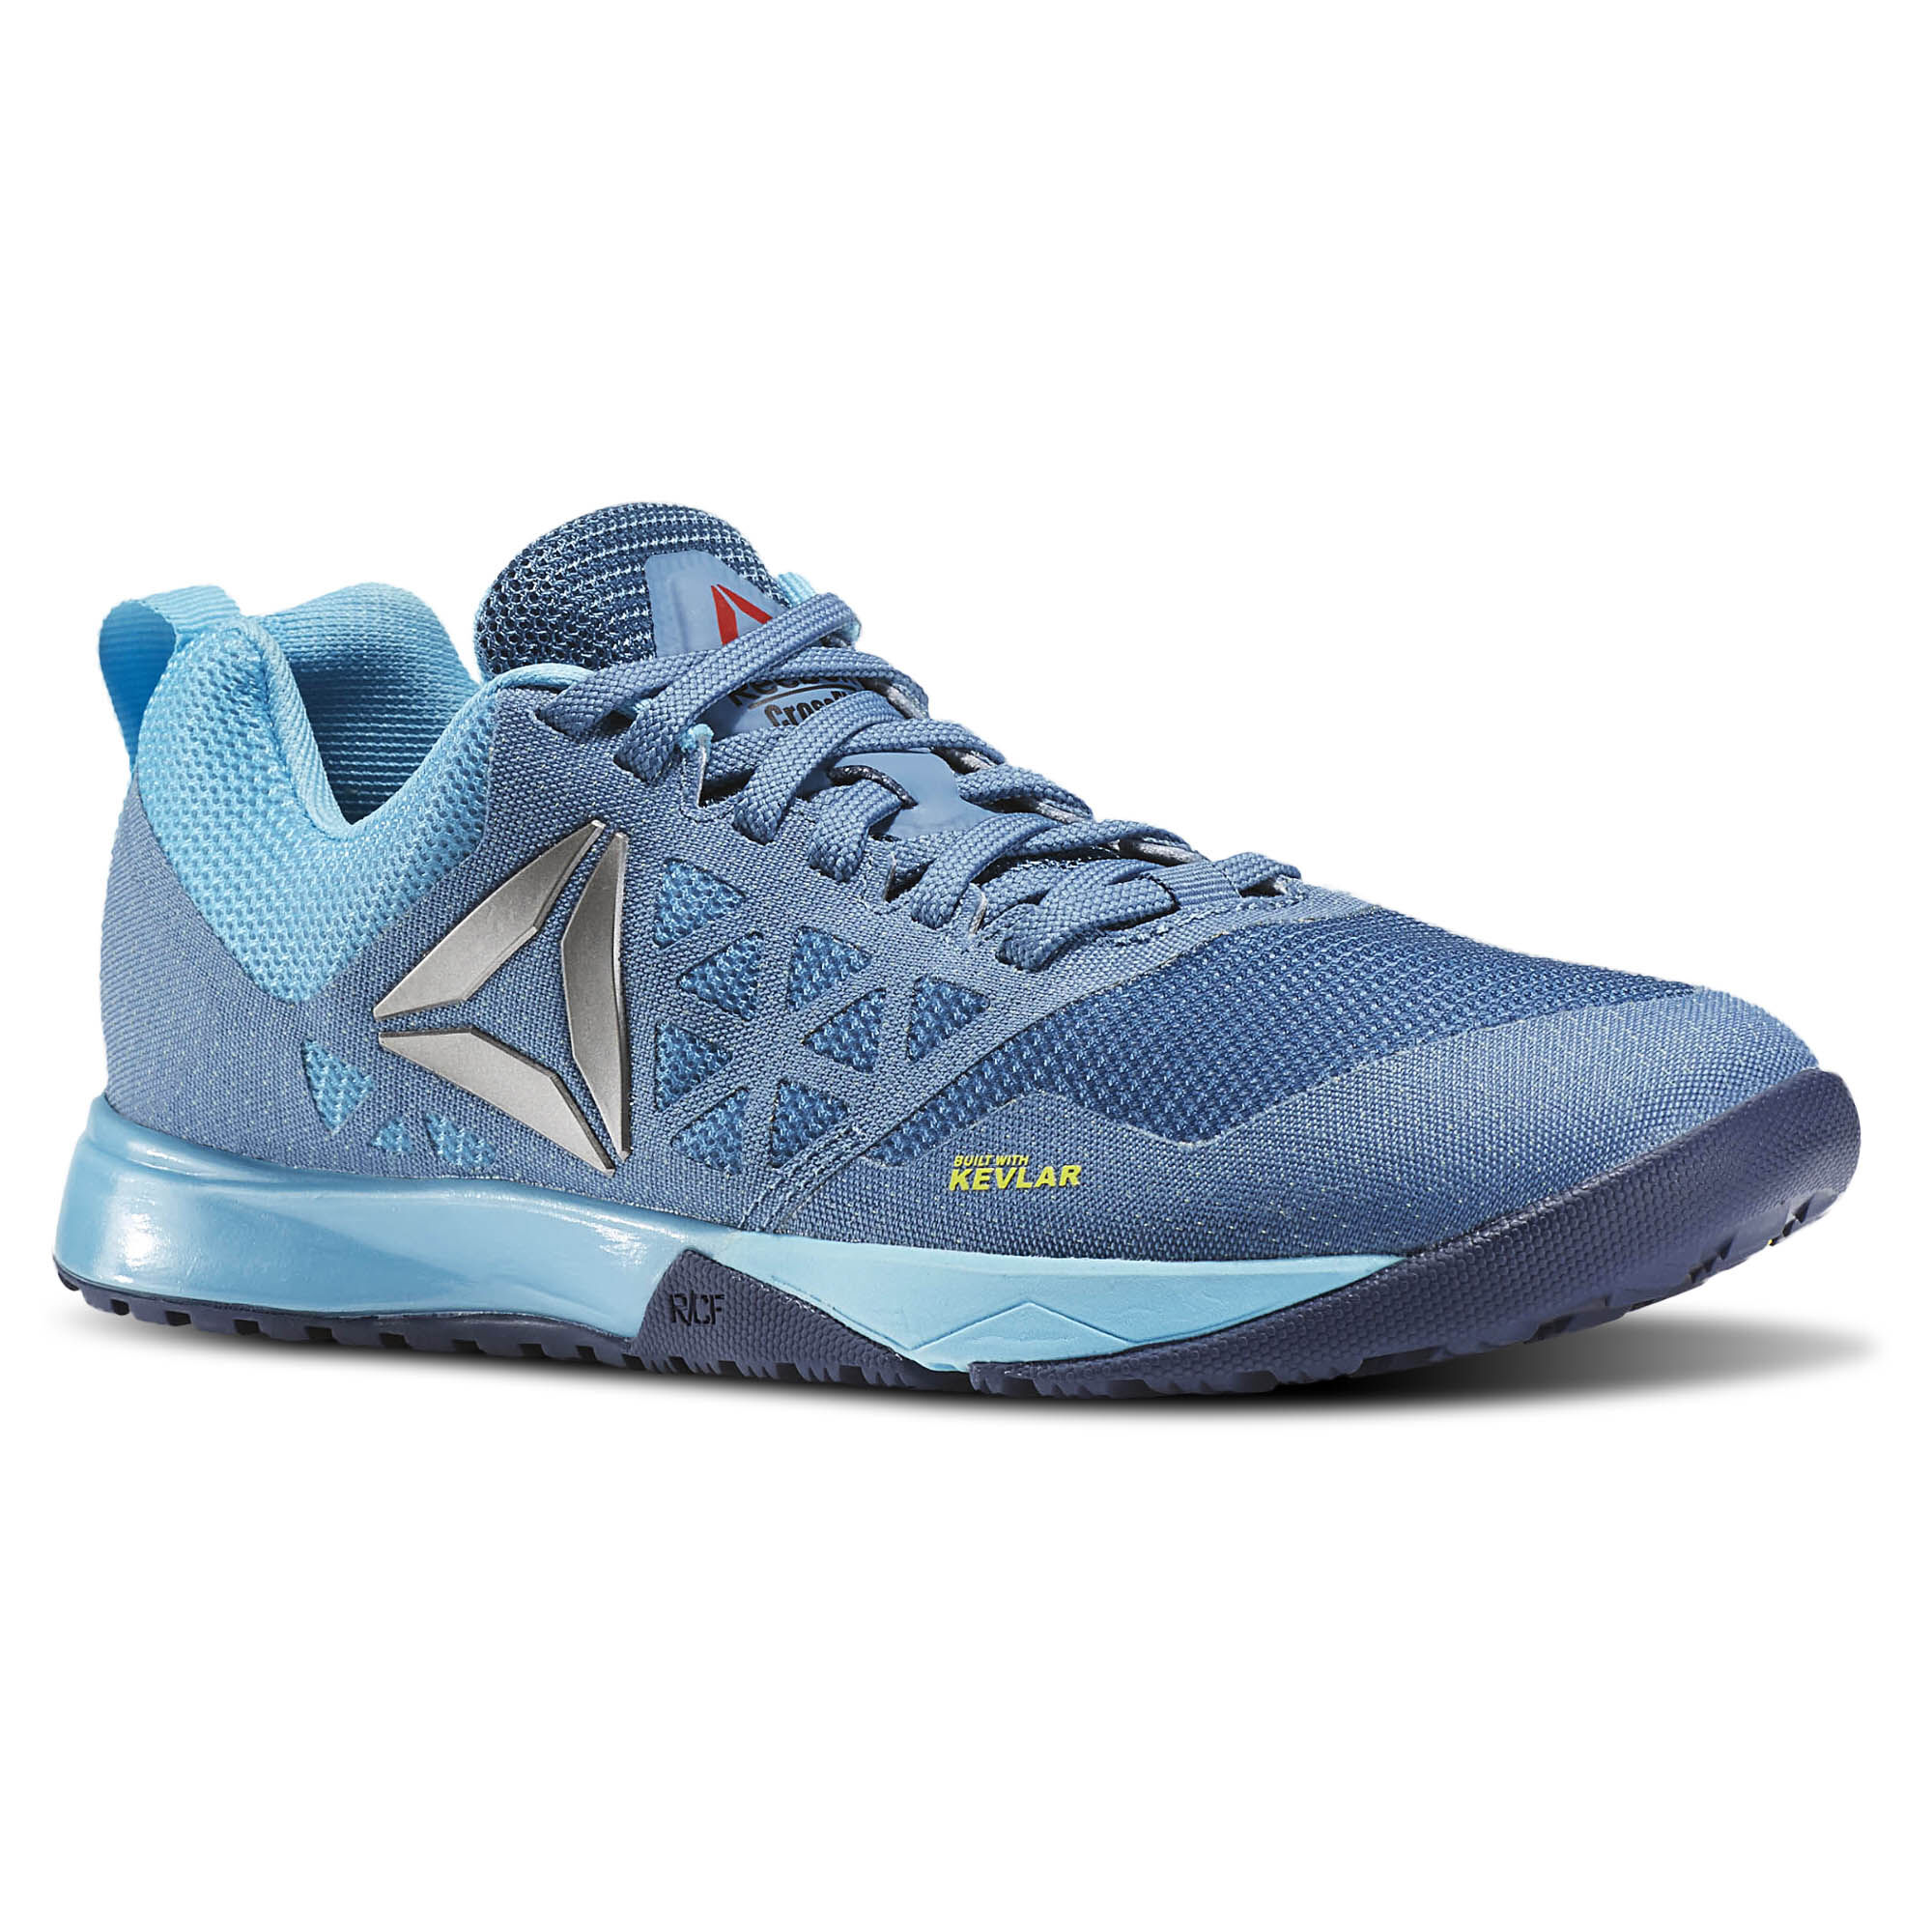 reebok nano lifter cheap   OFF54% The Largest Catalog Discounts 0019eb7cf